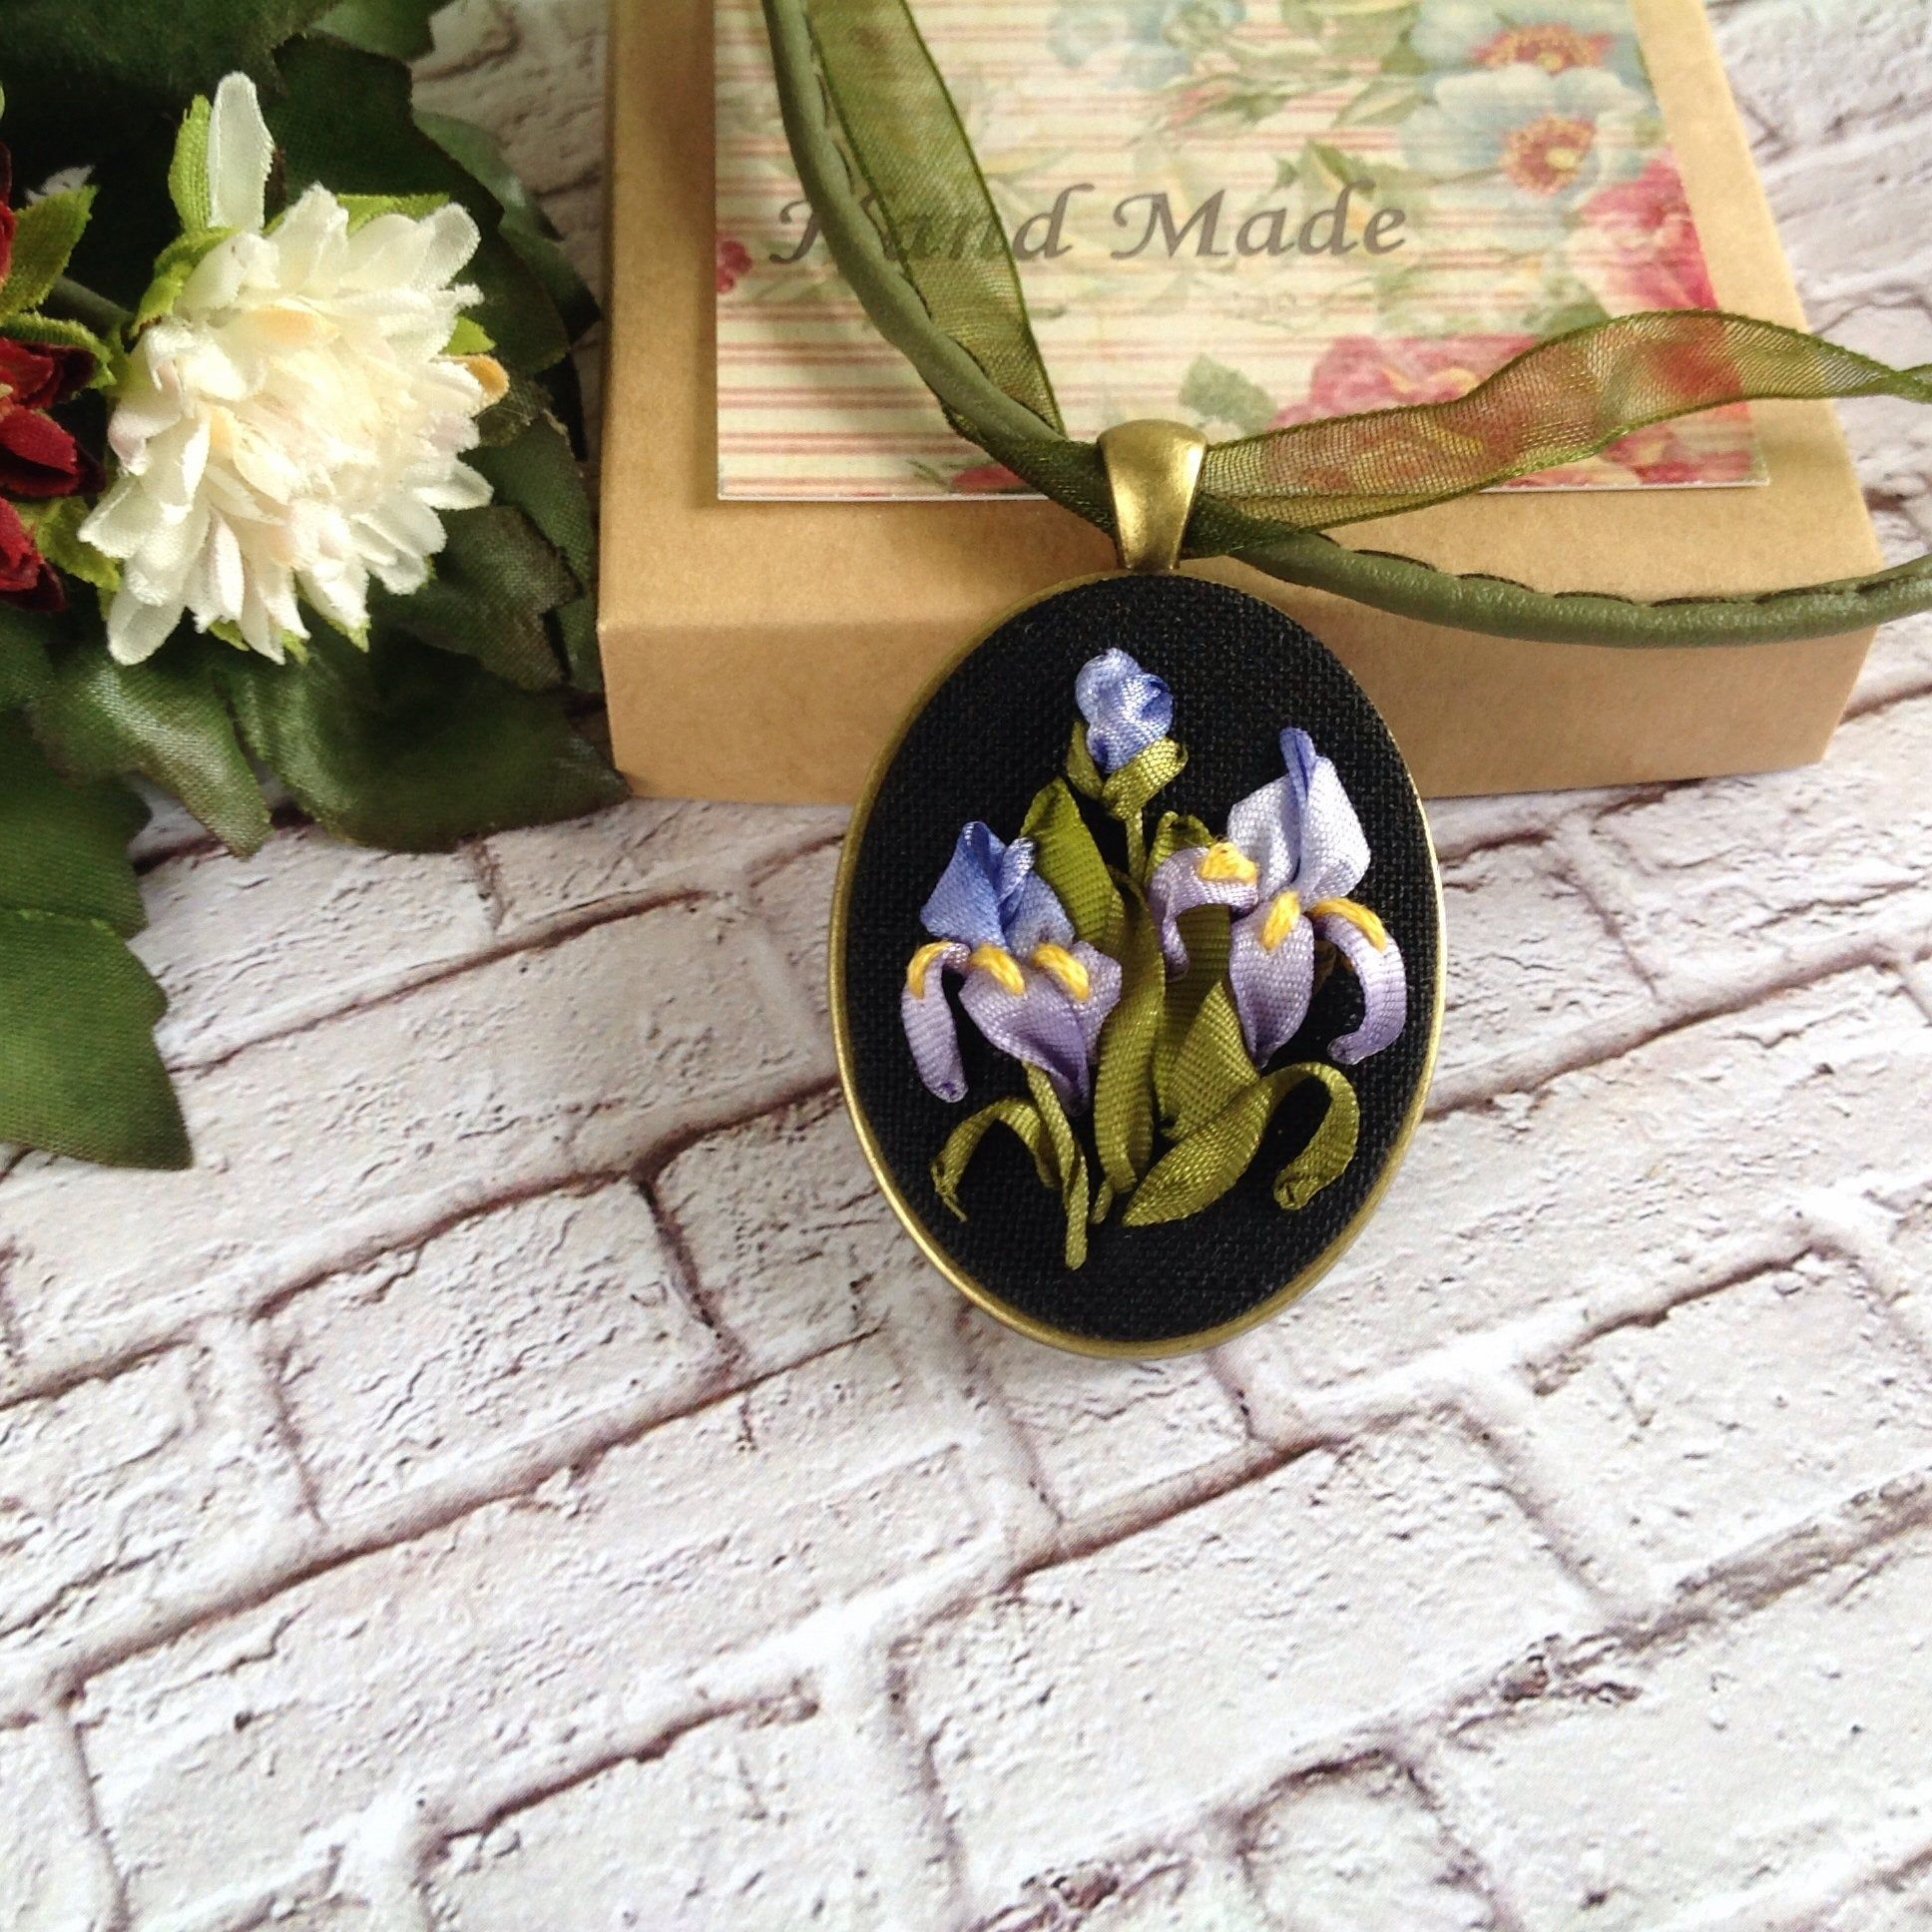 Iris Flower Necklace Silk Ribbon Embroidered Flower Jewelry For Woman Oval Floral Multicolor Pendant Hand Sti Flower Jewellery Iris Flowers Embroidered Flowers